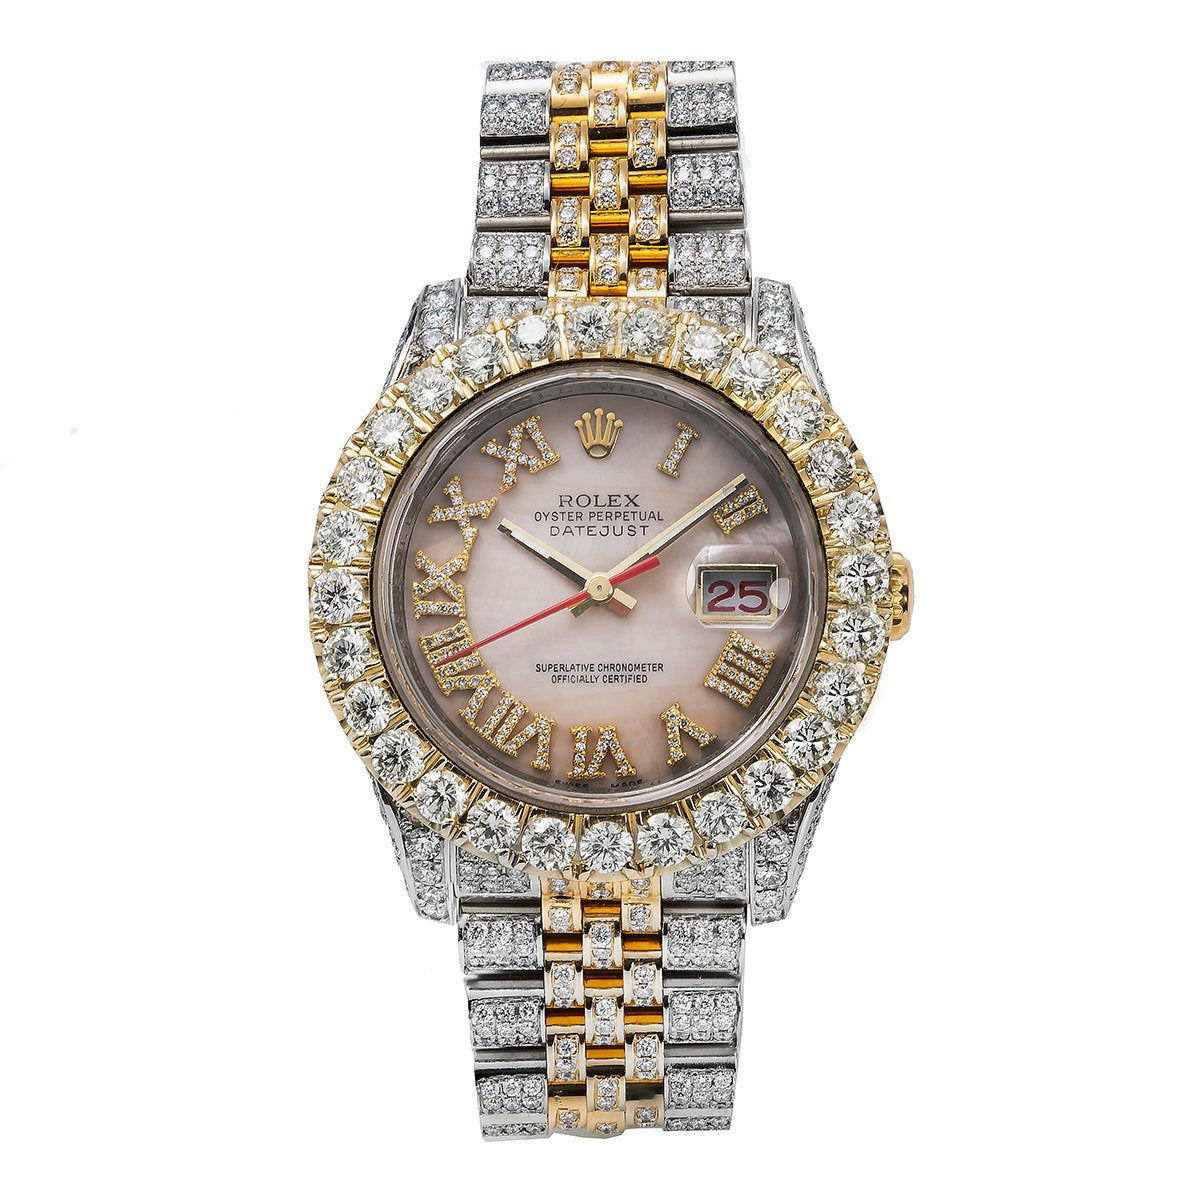 Rolex Datejust Diamond Watch, 116263 36mm, Light Pink Mother Of Pearl Roman Numeral Dial With 13.75CT Diamonds Watch